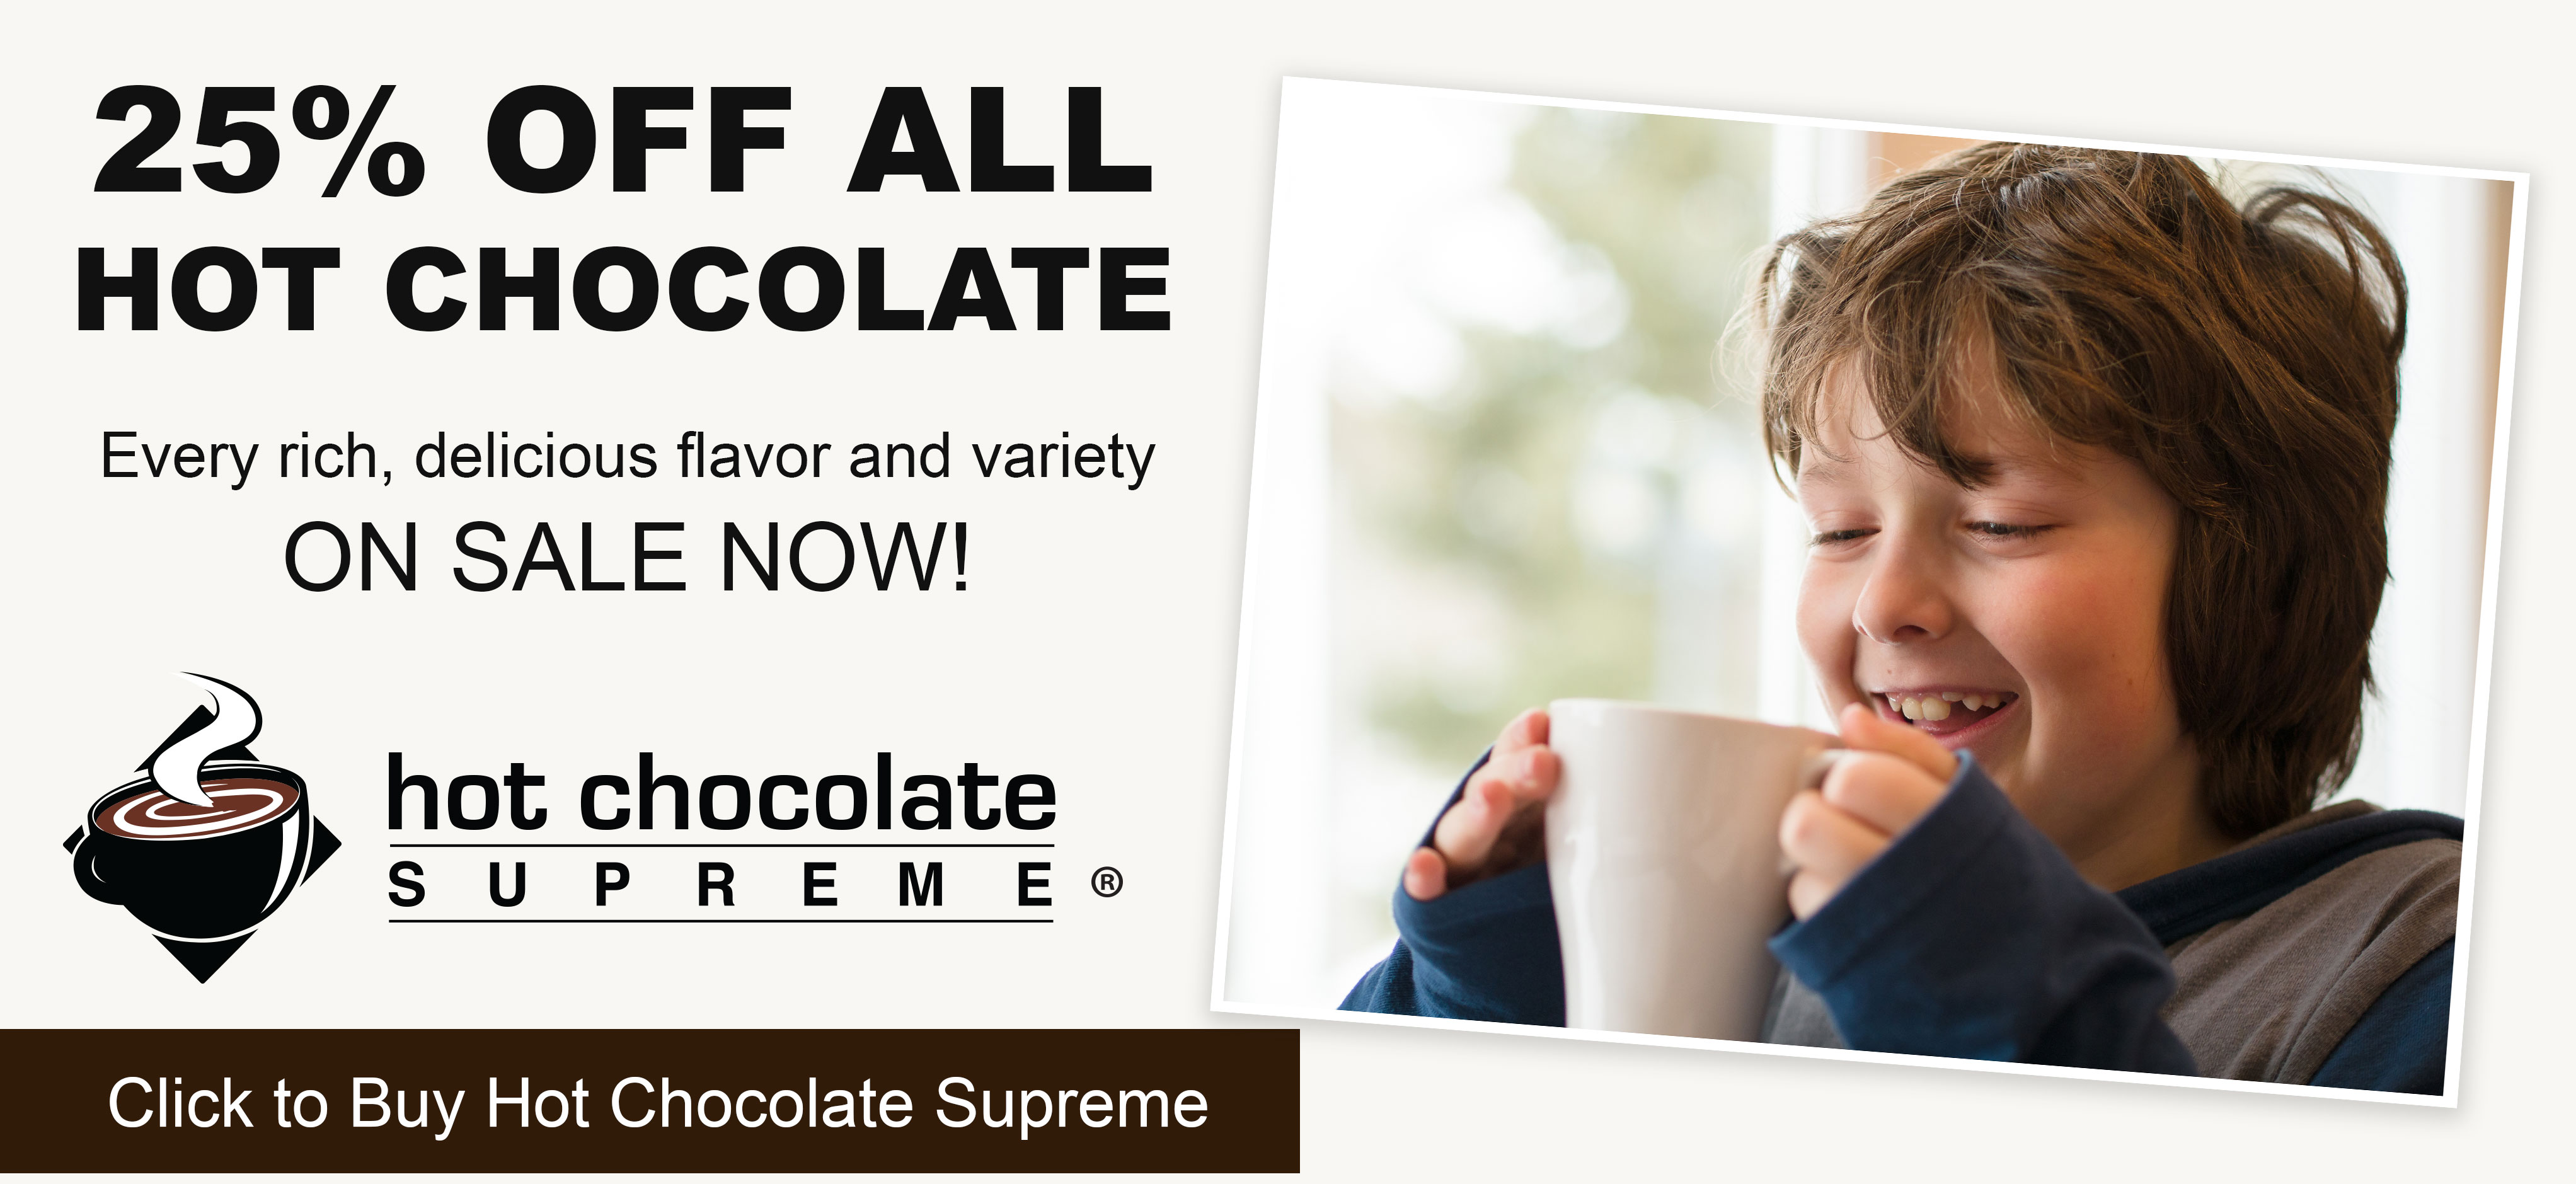 25% off all hot chocolate. Every rich and delicious variety and flavor on sale now! Click to buy Hot Chocolate Supreme.